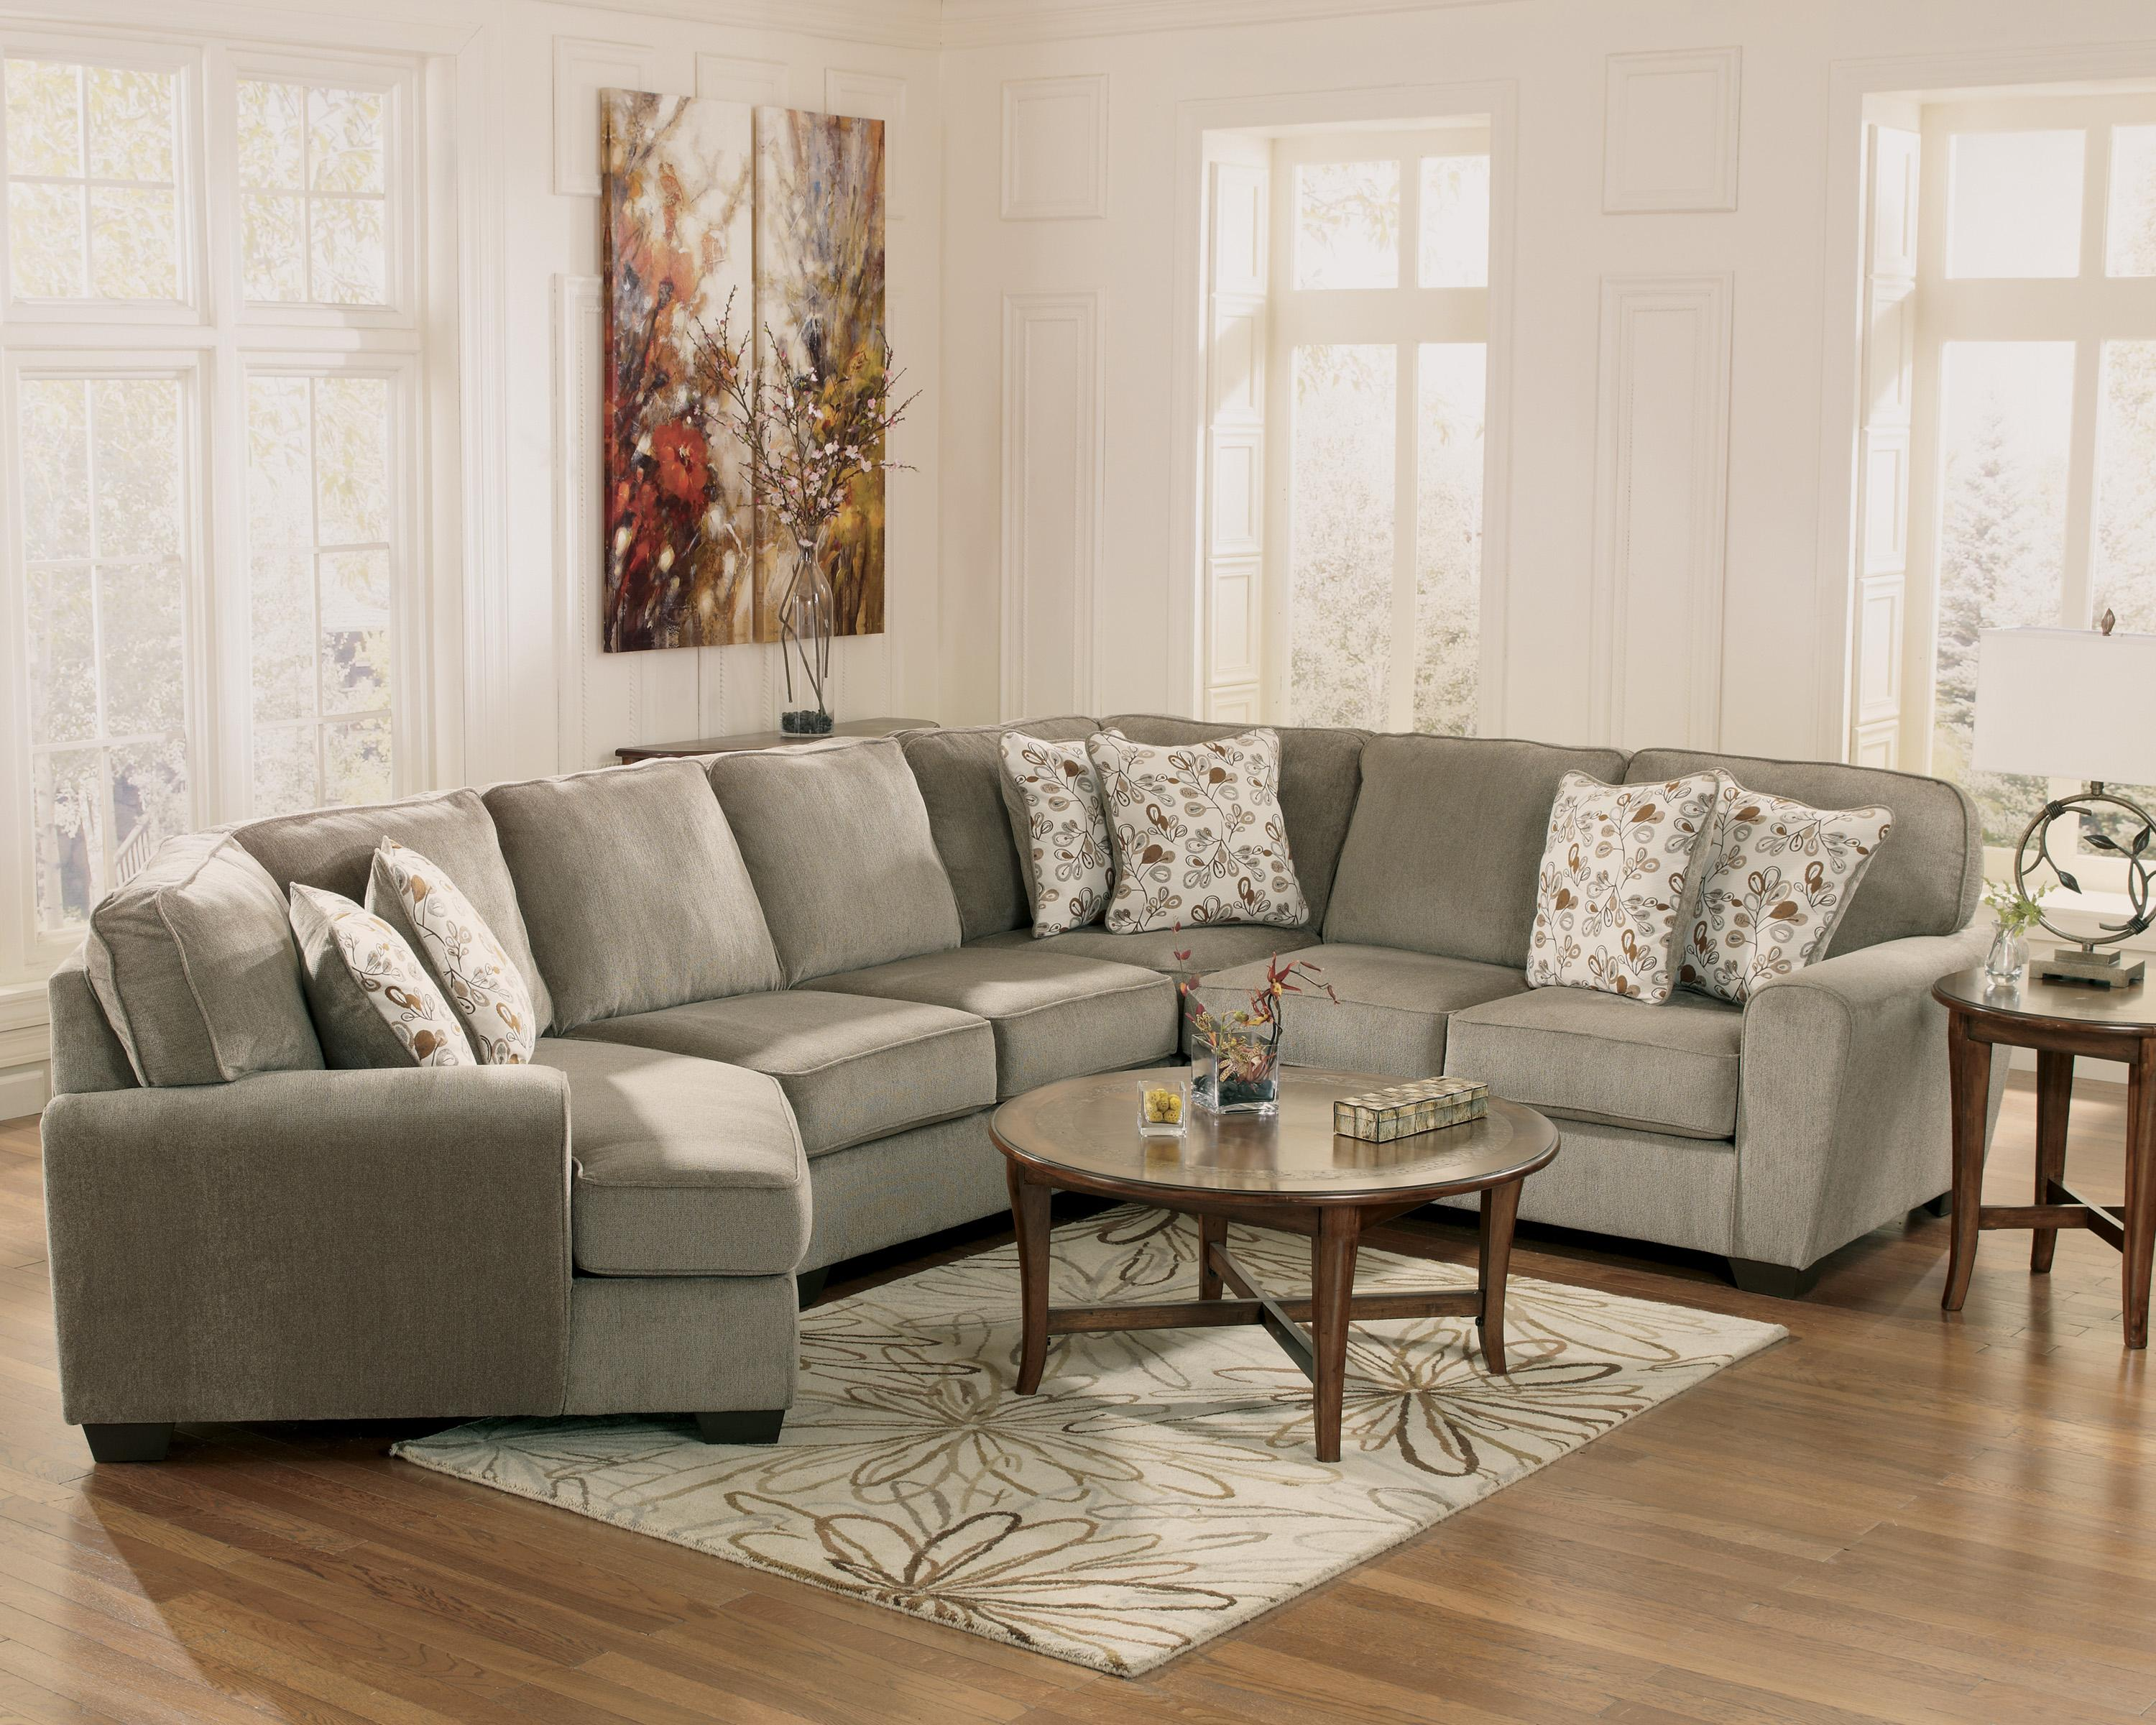 Ashley Furniture Patola Park Patina 4 Piece Small Sectional With Left Cuddler John V Schultz